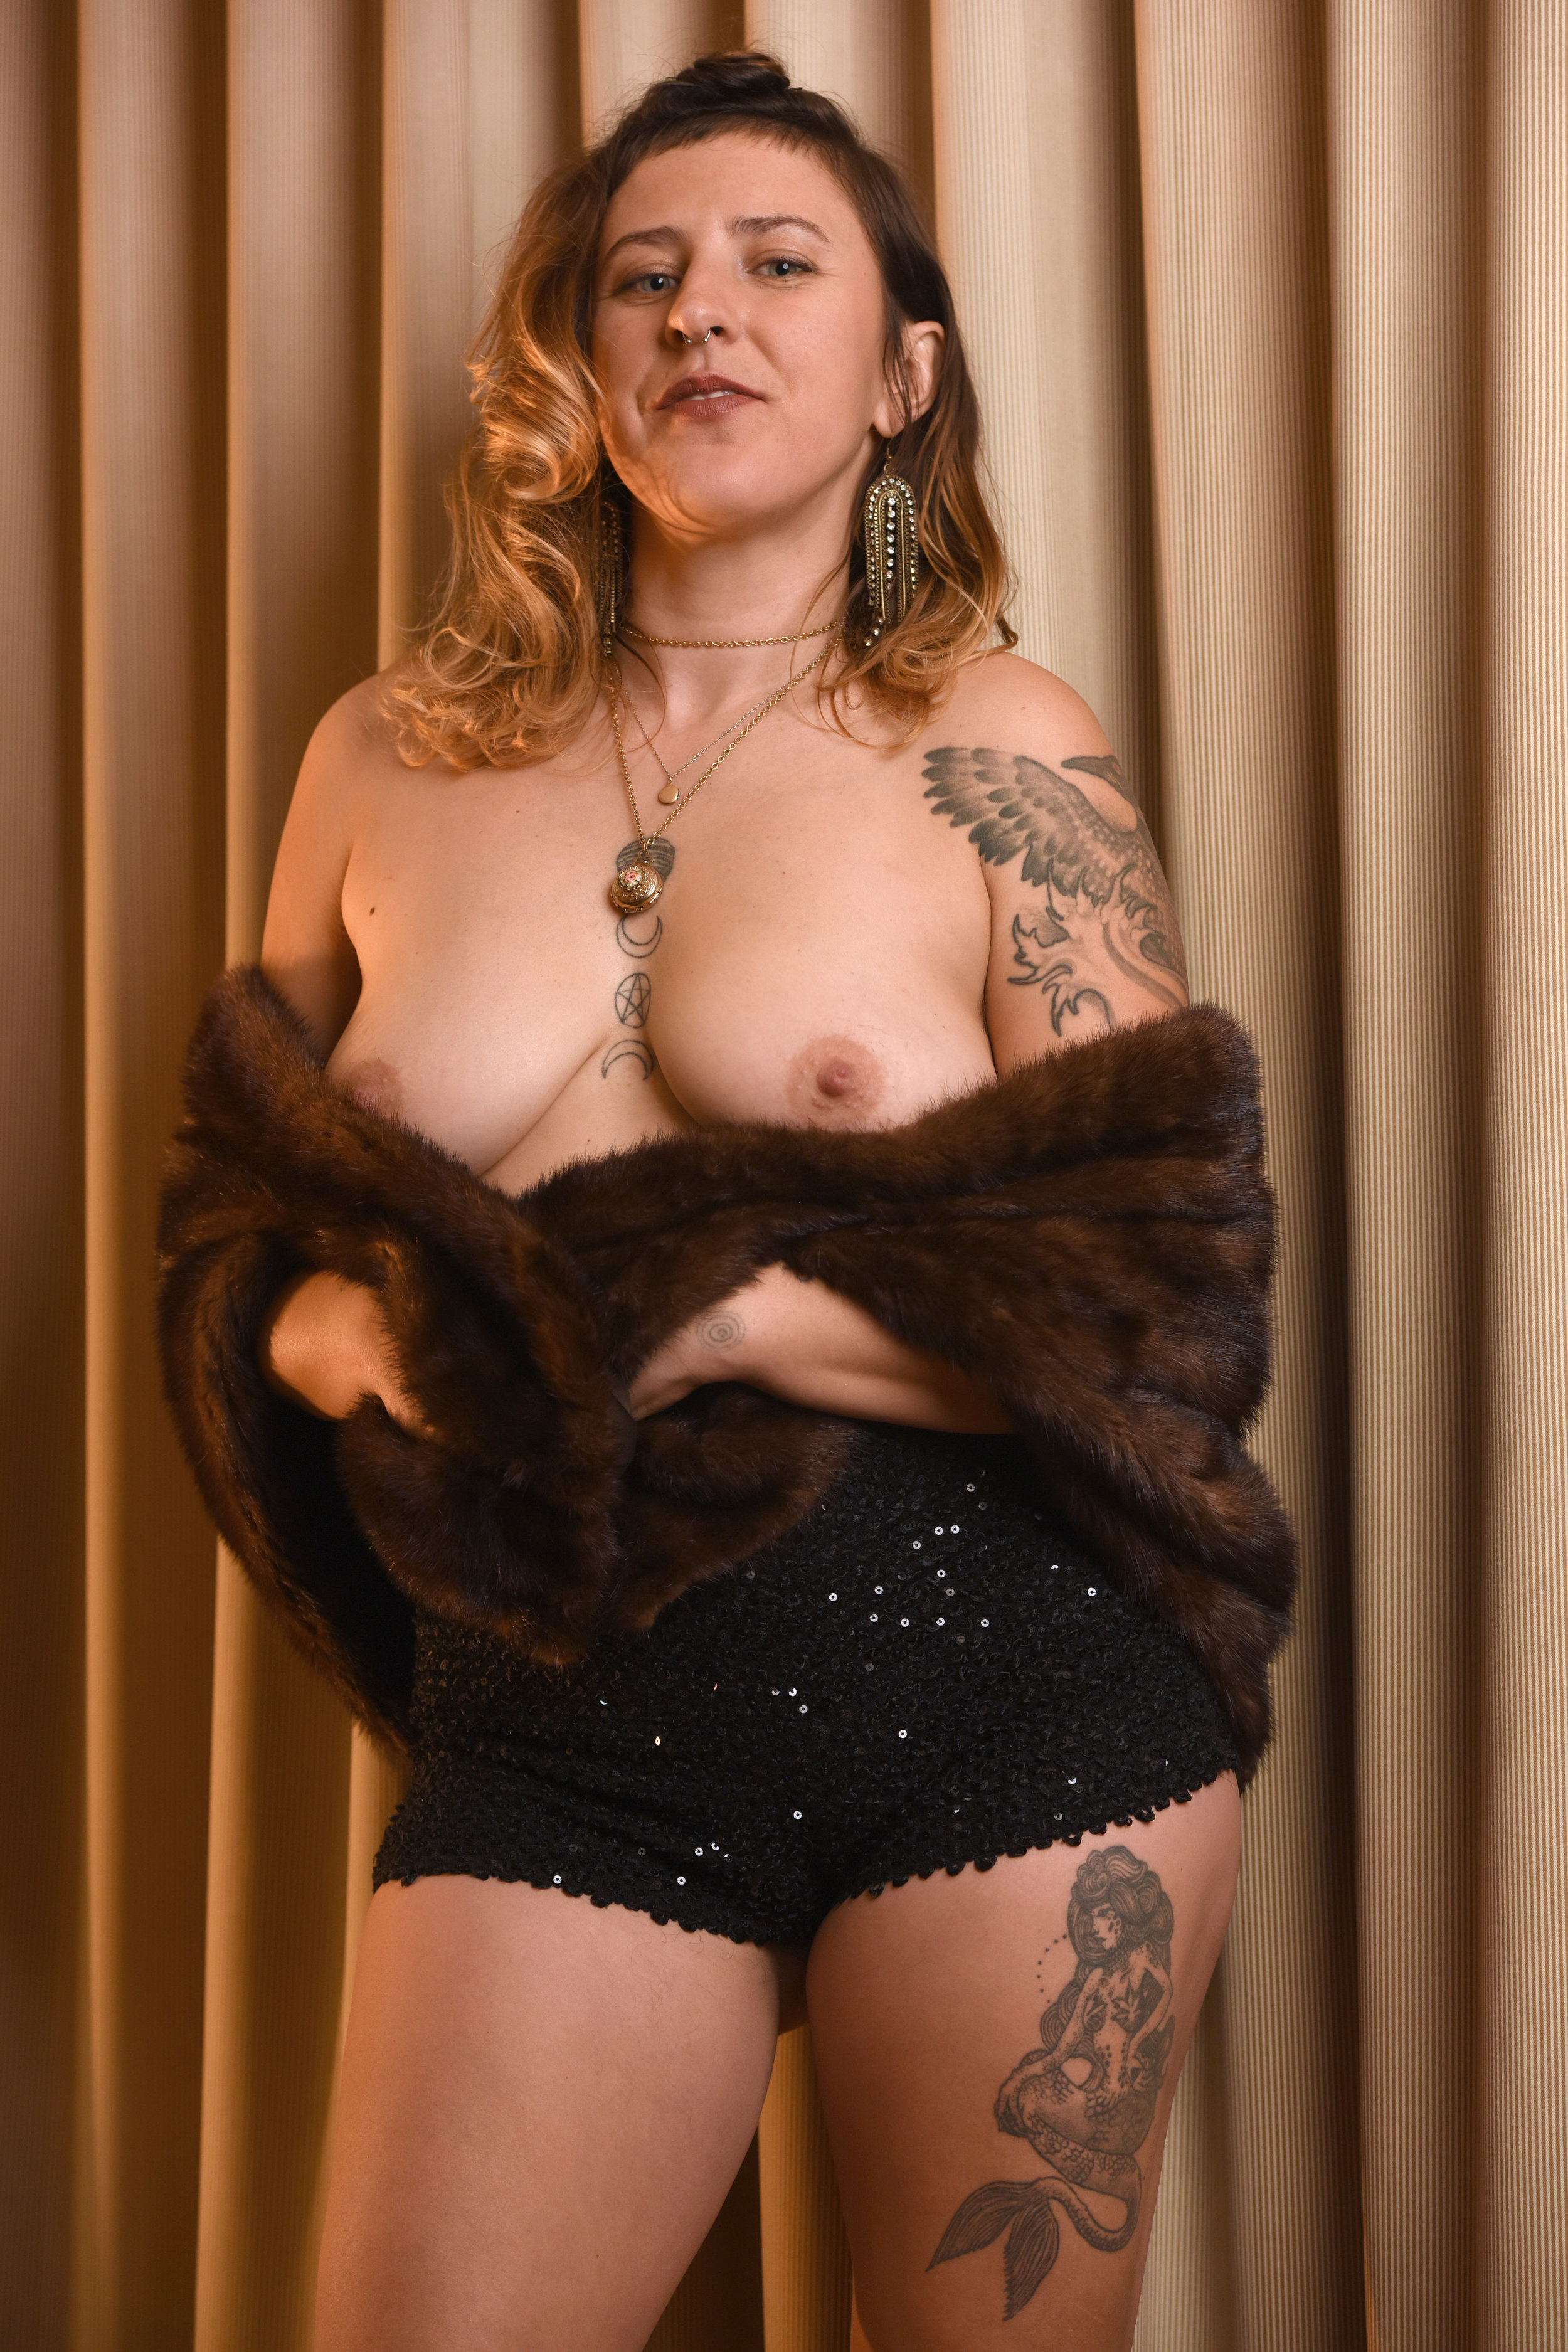 Etiquette - Intimacy: In inviting you into my world, I expect to be treated with kindness and respect, as I of course will return to you tenfold. Please be considerate and discreet in our interactions, both in email and in person. And woo me! There is nothing I love more than a person taking the time to get to know me. Scheduling longer dates so we can get to know one another and build connection, small acts of care, intentional, verbal consent (SO sexy..) and thoughtful gestures go incredibly far in winning my heart and affections. Let us honor each other as whole people. Let us lean into the magick and healing of true connection. I promise you, the return will be priceless.Health and wellness: I show my dates care and respect. Part of this is arriving to our time together in good health and hygiene. I expect the same from you. Please arrive showered, with clean breath and in good health. Communicate with me about any physical disabilities, I am happy to work with you. And please, no strong colognes- I would much rather smell your natural odor ;)The minutae: Please place your donation in an unsealed envelope in a visible place at the start of our time together. No need to say anything about it. If you'd like to extend our time together that is always a possibility- go ahead and ask! And refer to my regular rates for that time.